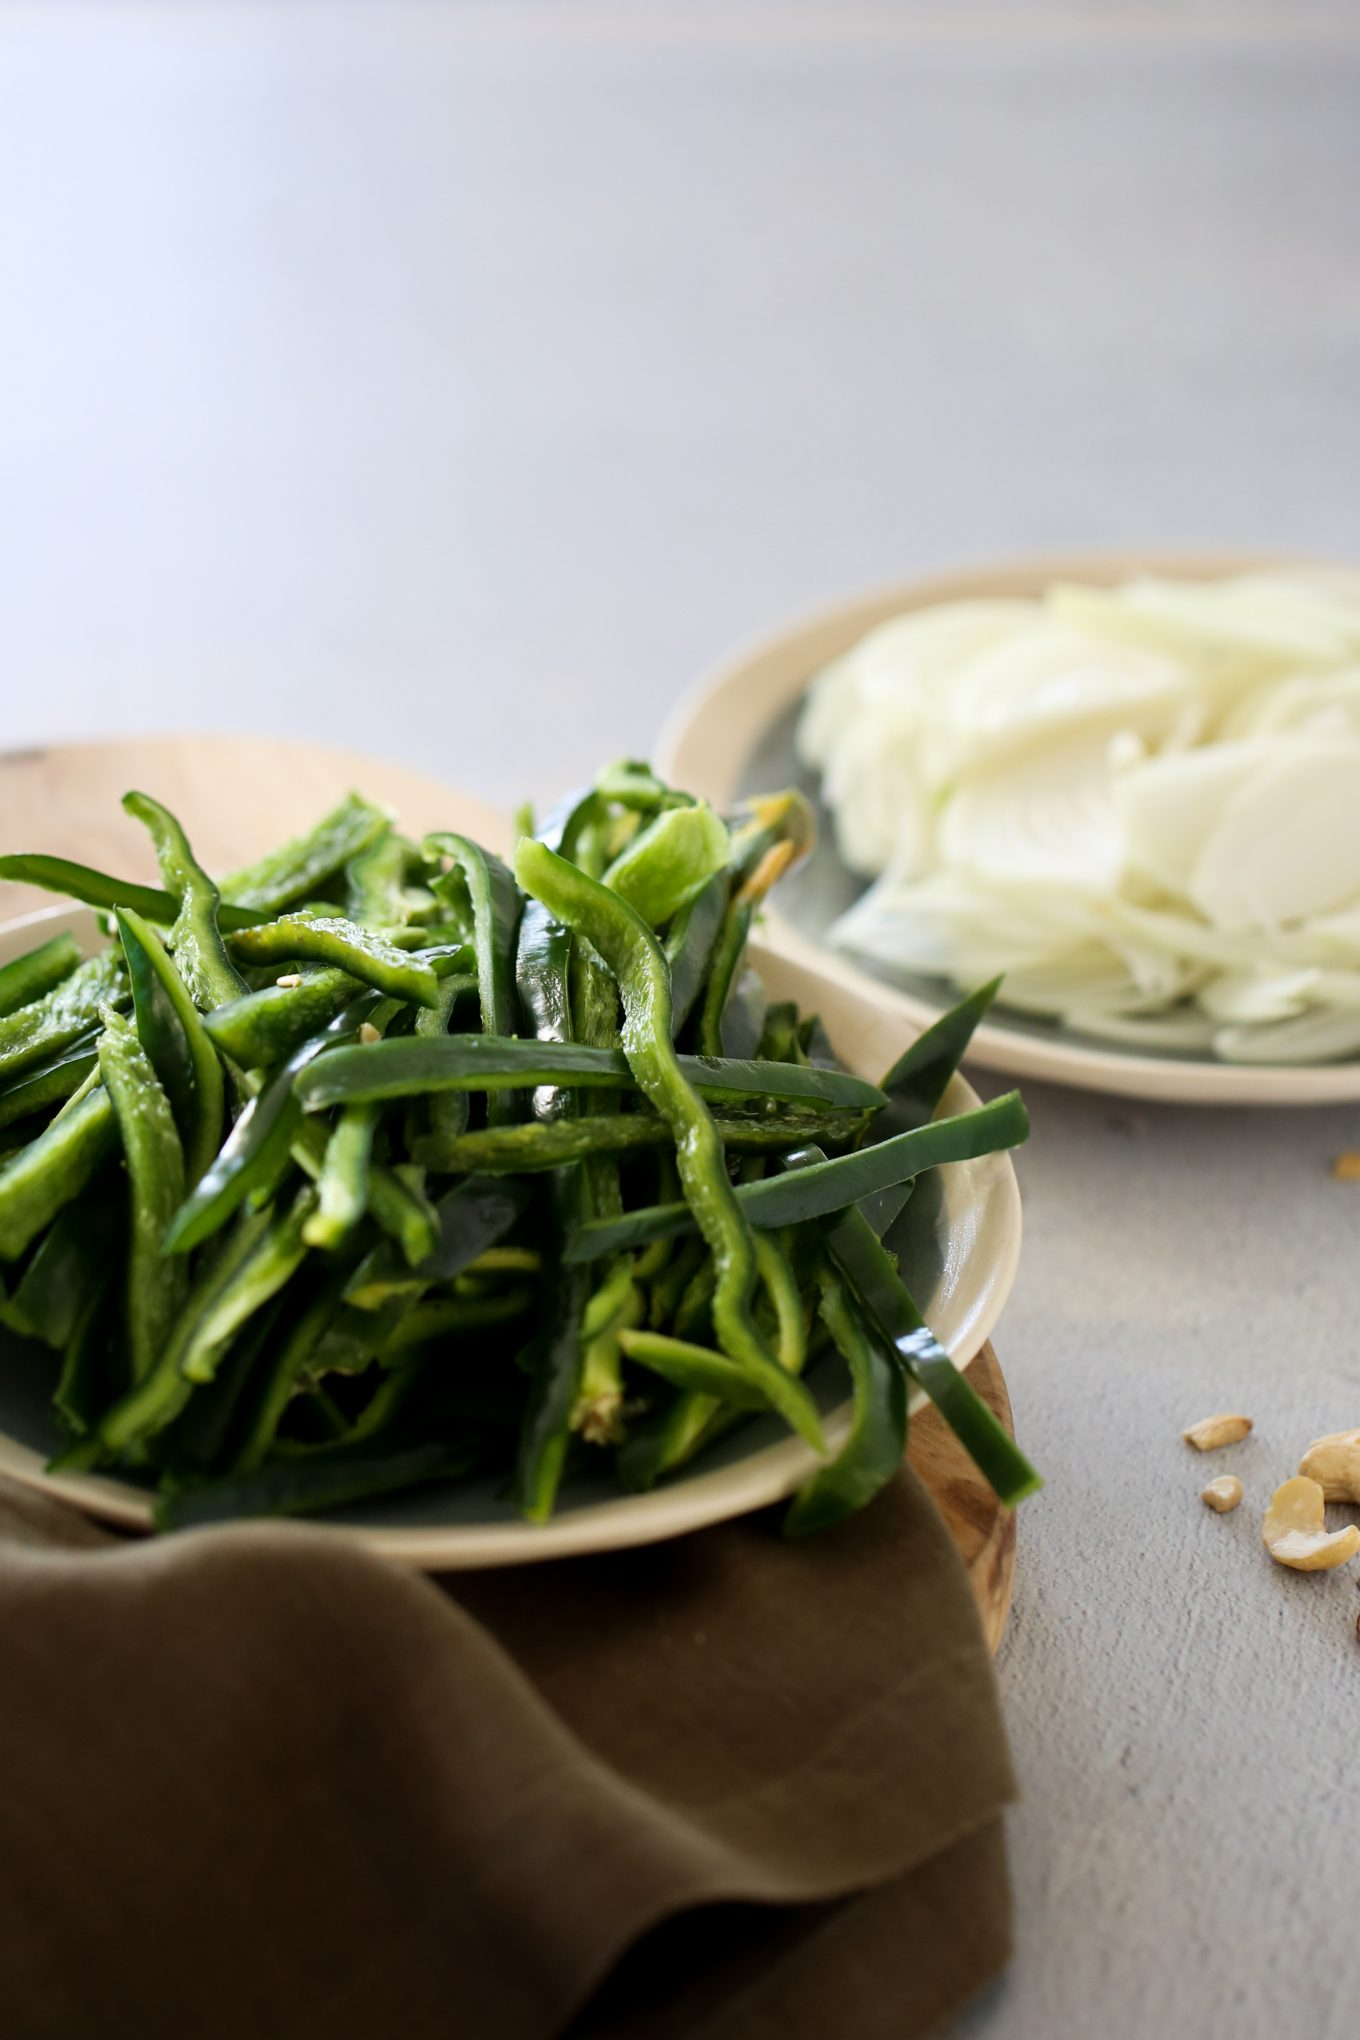 sliced onions and poblano peppers (rajas)